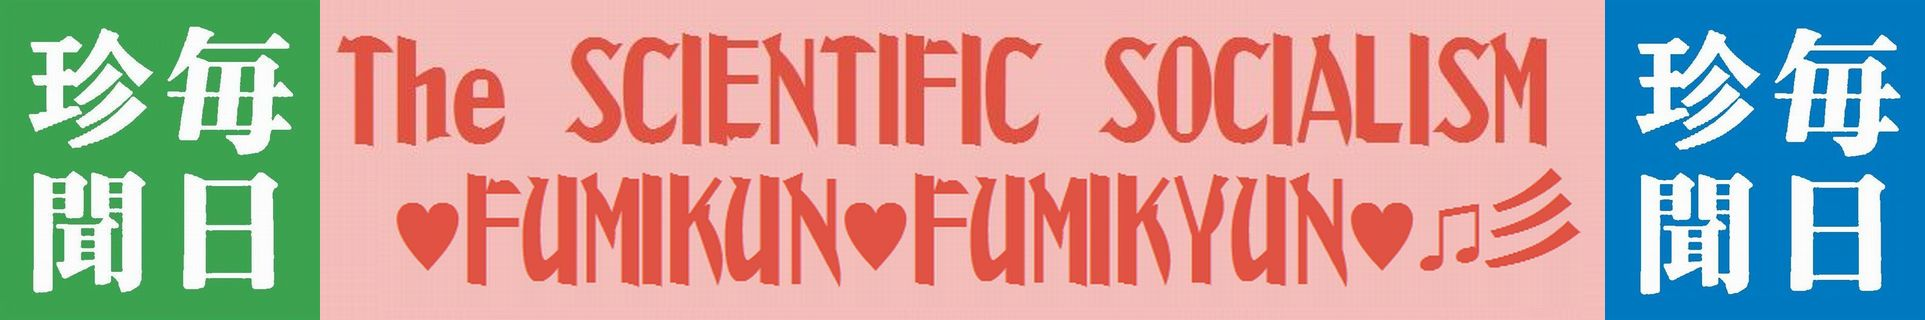 The SCIENTIFIC SOCIALISM❤FUMIKUN❤FUMIKYUN❤♫彡